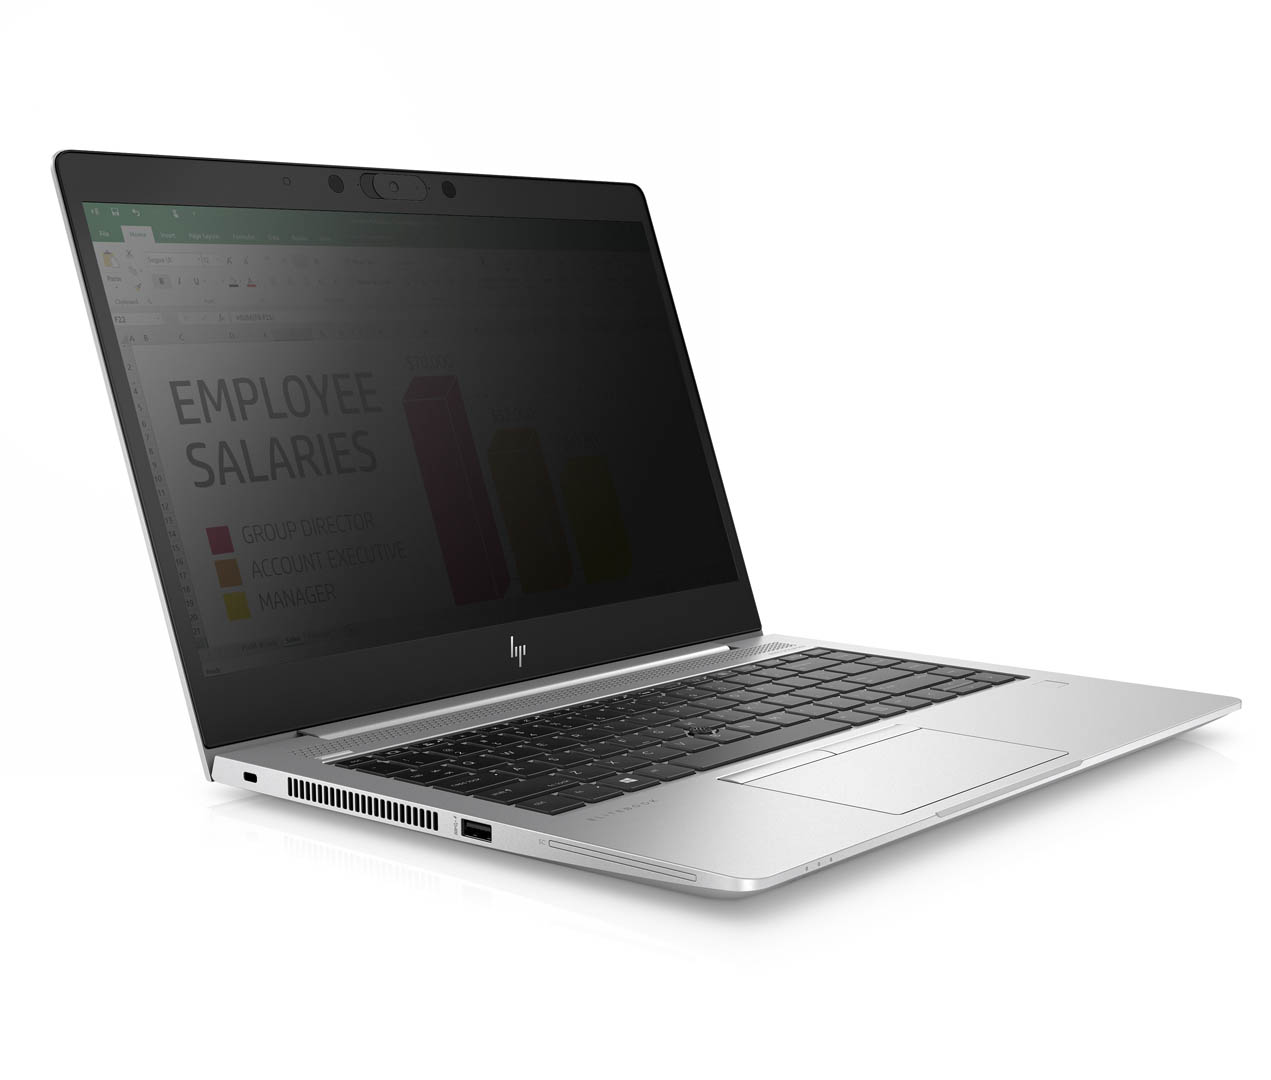 HP annuncia gli EliteBook 700 G6 e l'HP mt45 Mobile Thin Client 8